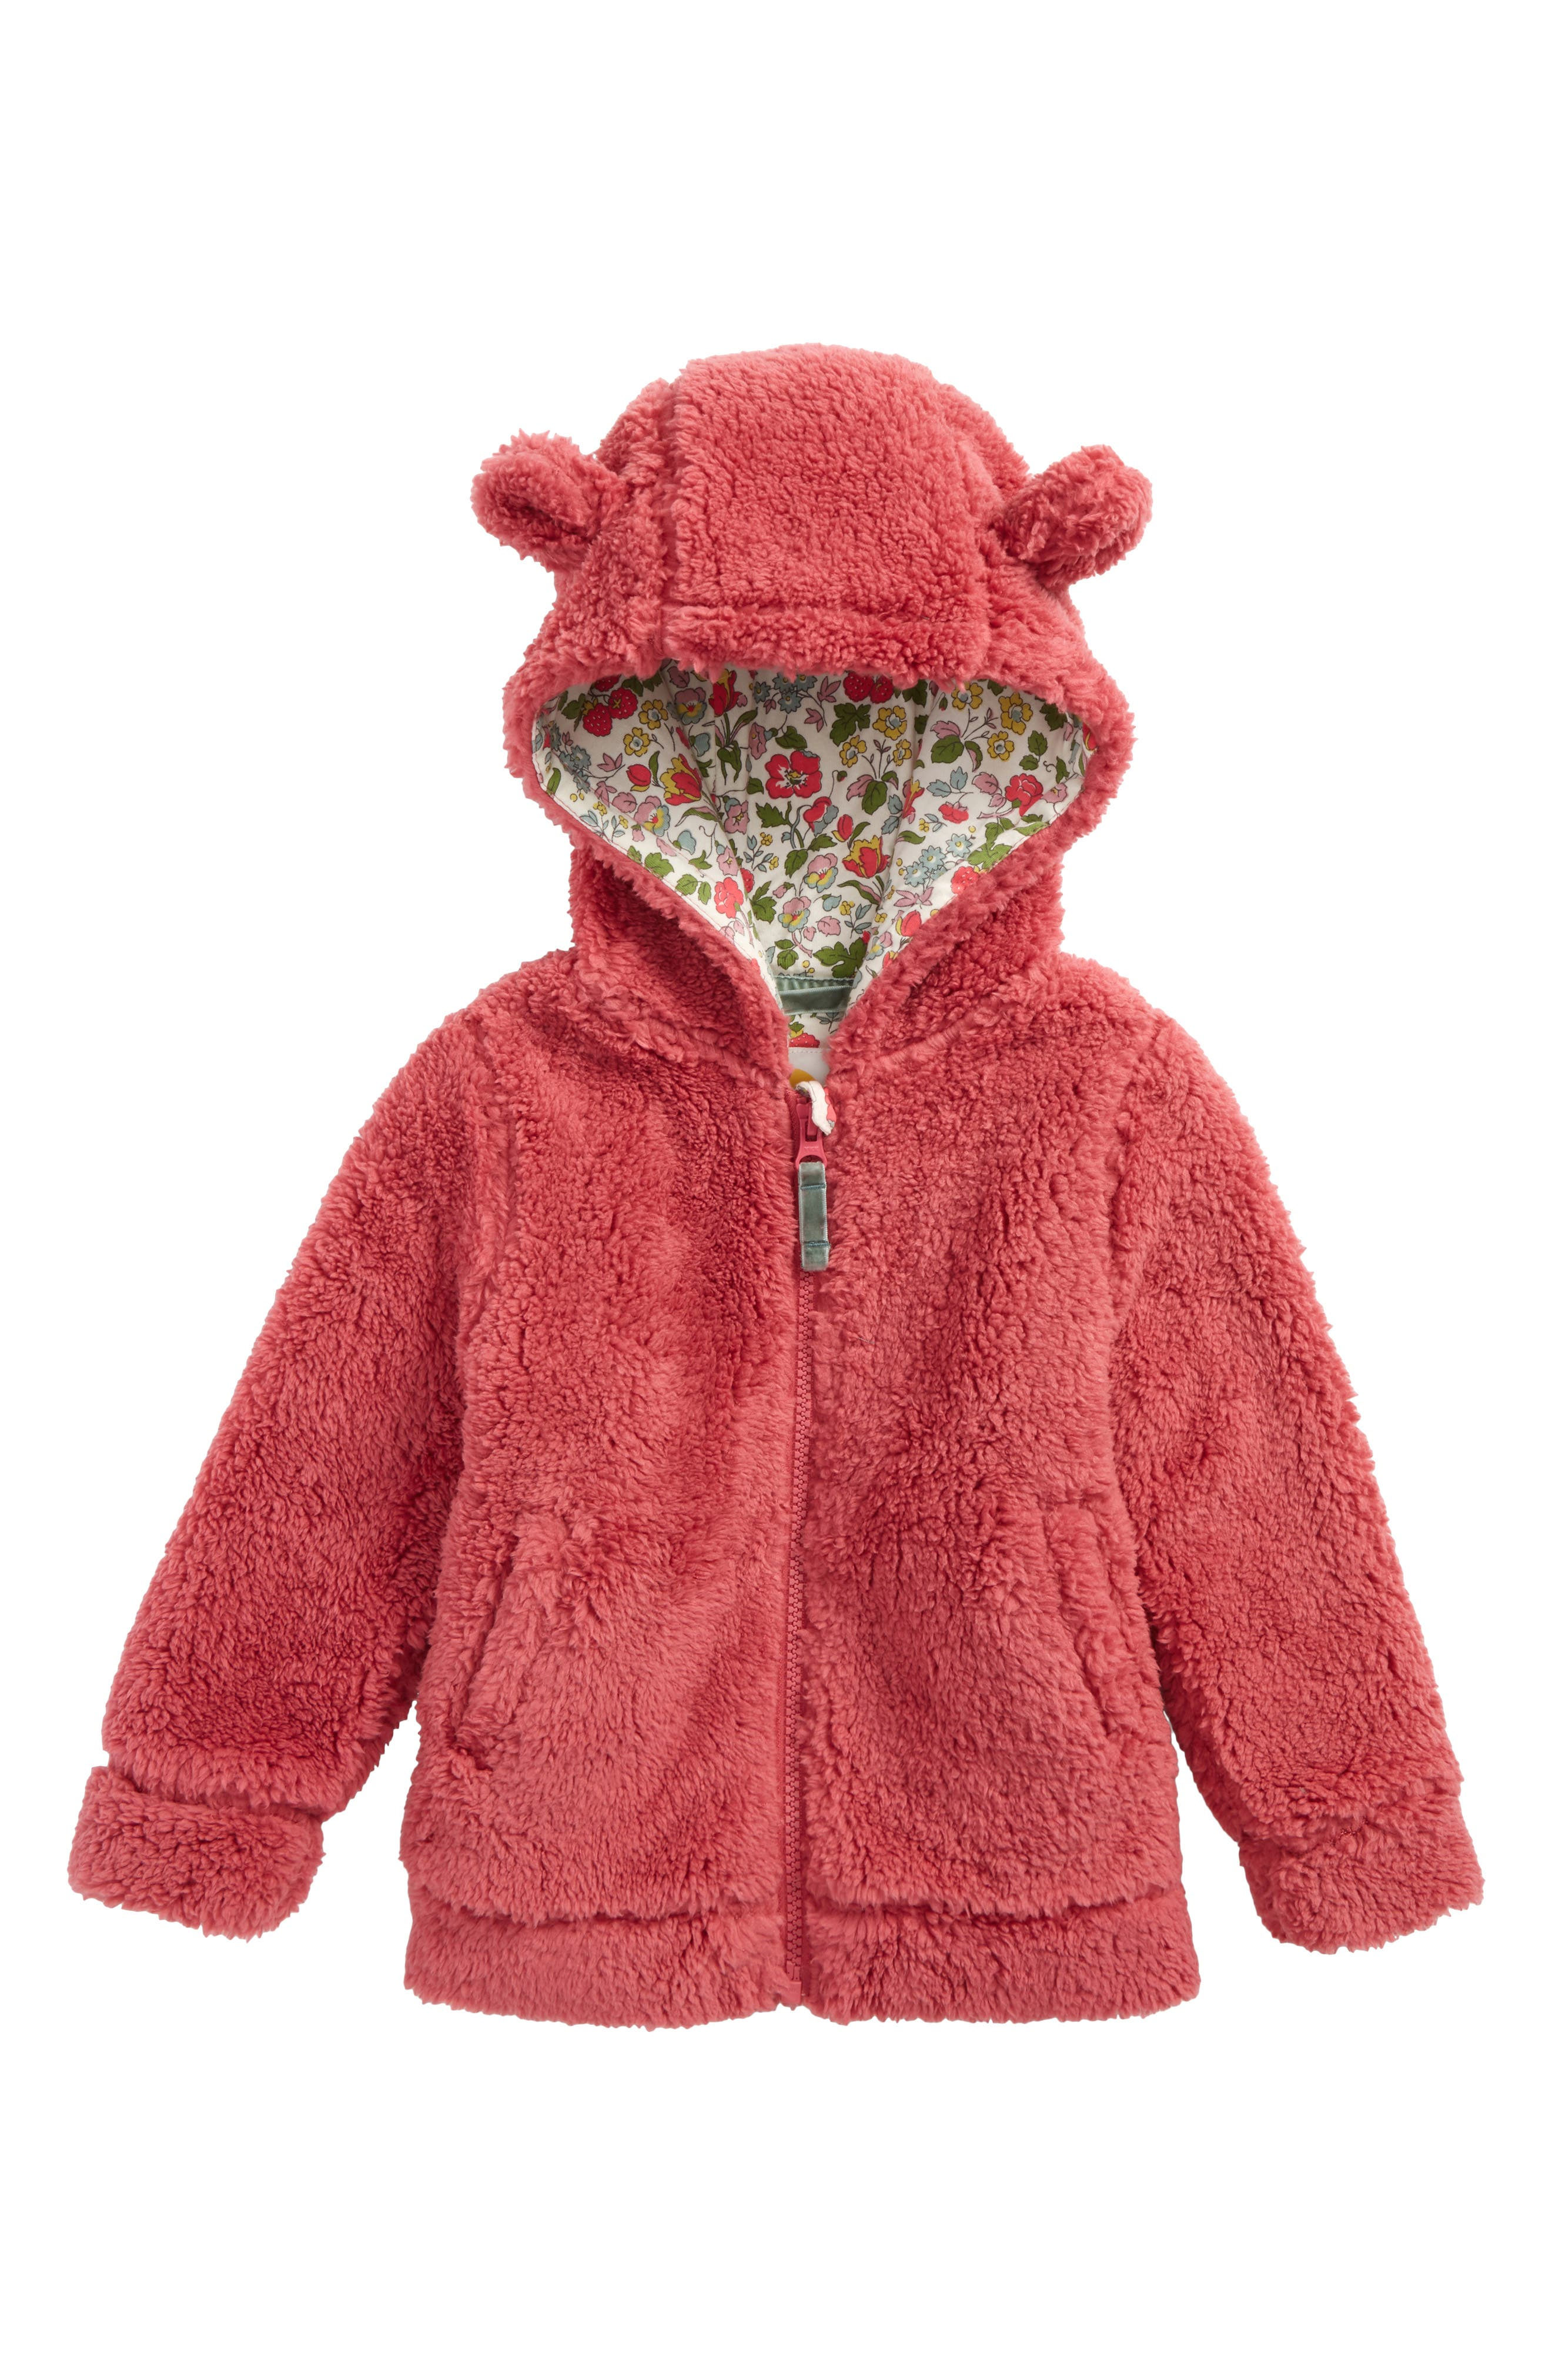 Cosy Teddy Bear Hoodie,                         Main,                         color,